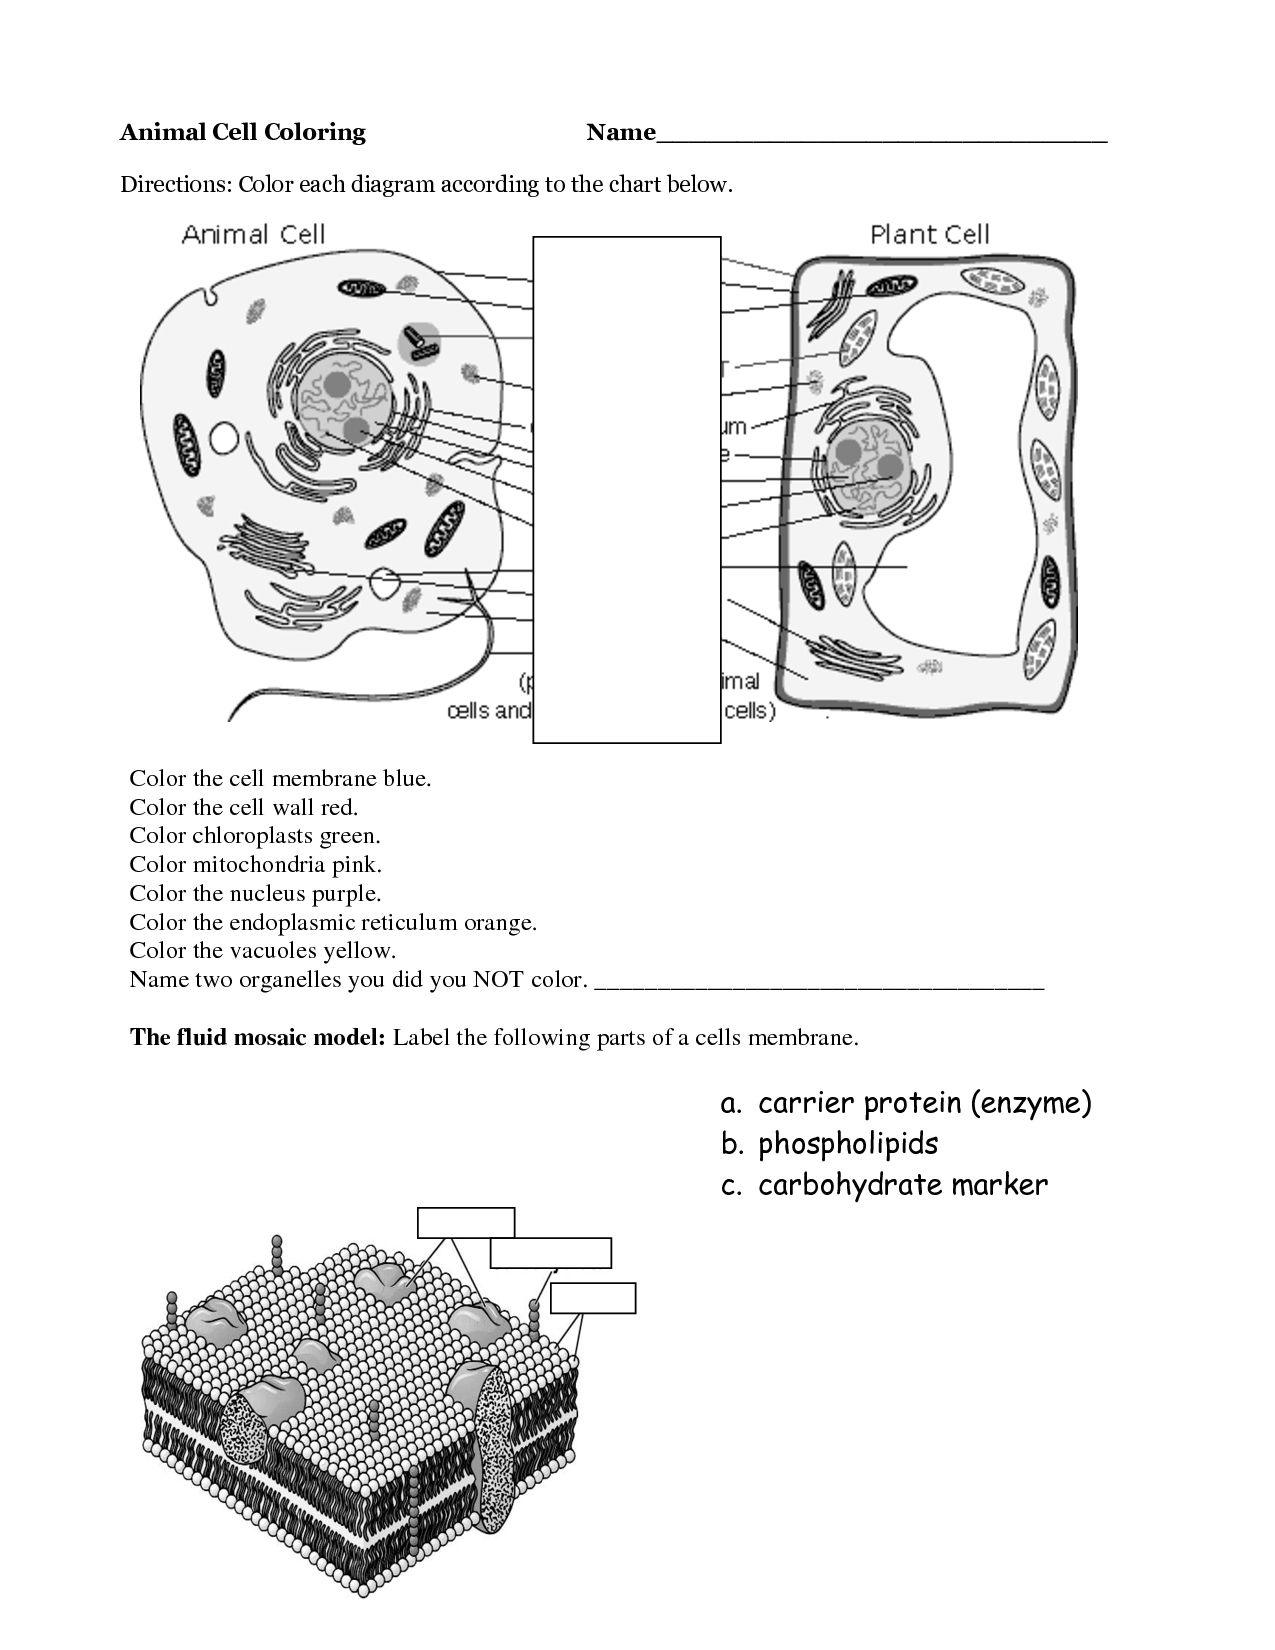 Free Animal Cell Coloring Page Download Free Clip Art